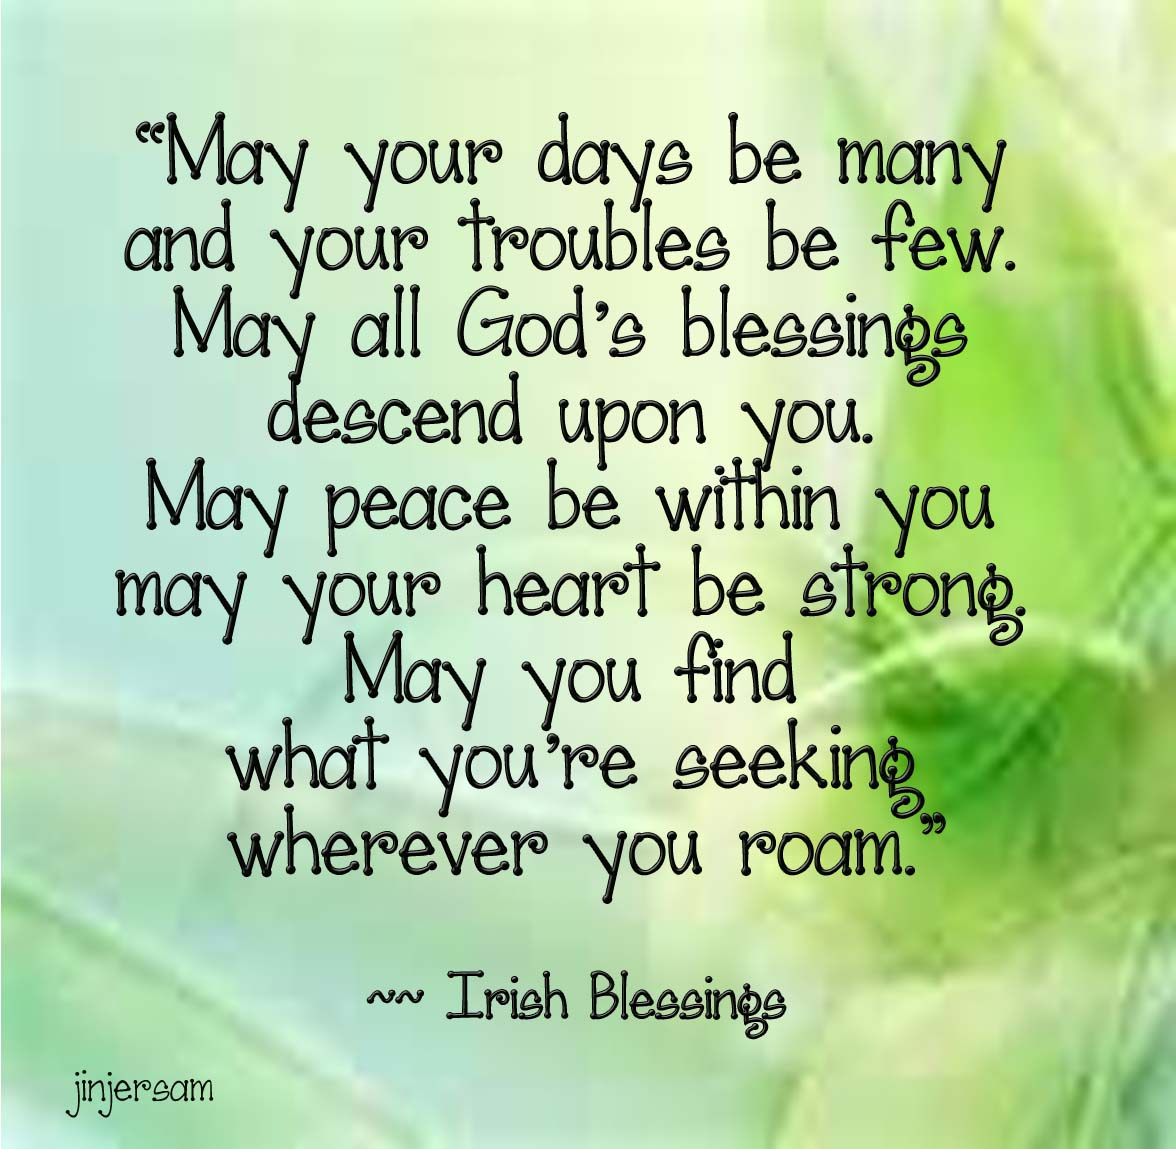 Blessings Quotes: * Nubia_group Inspiration *: Sharing Irish Blessings (from